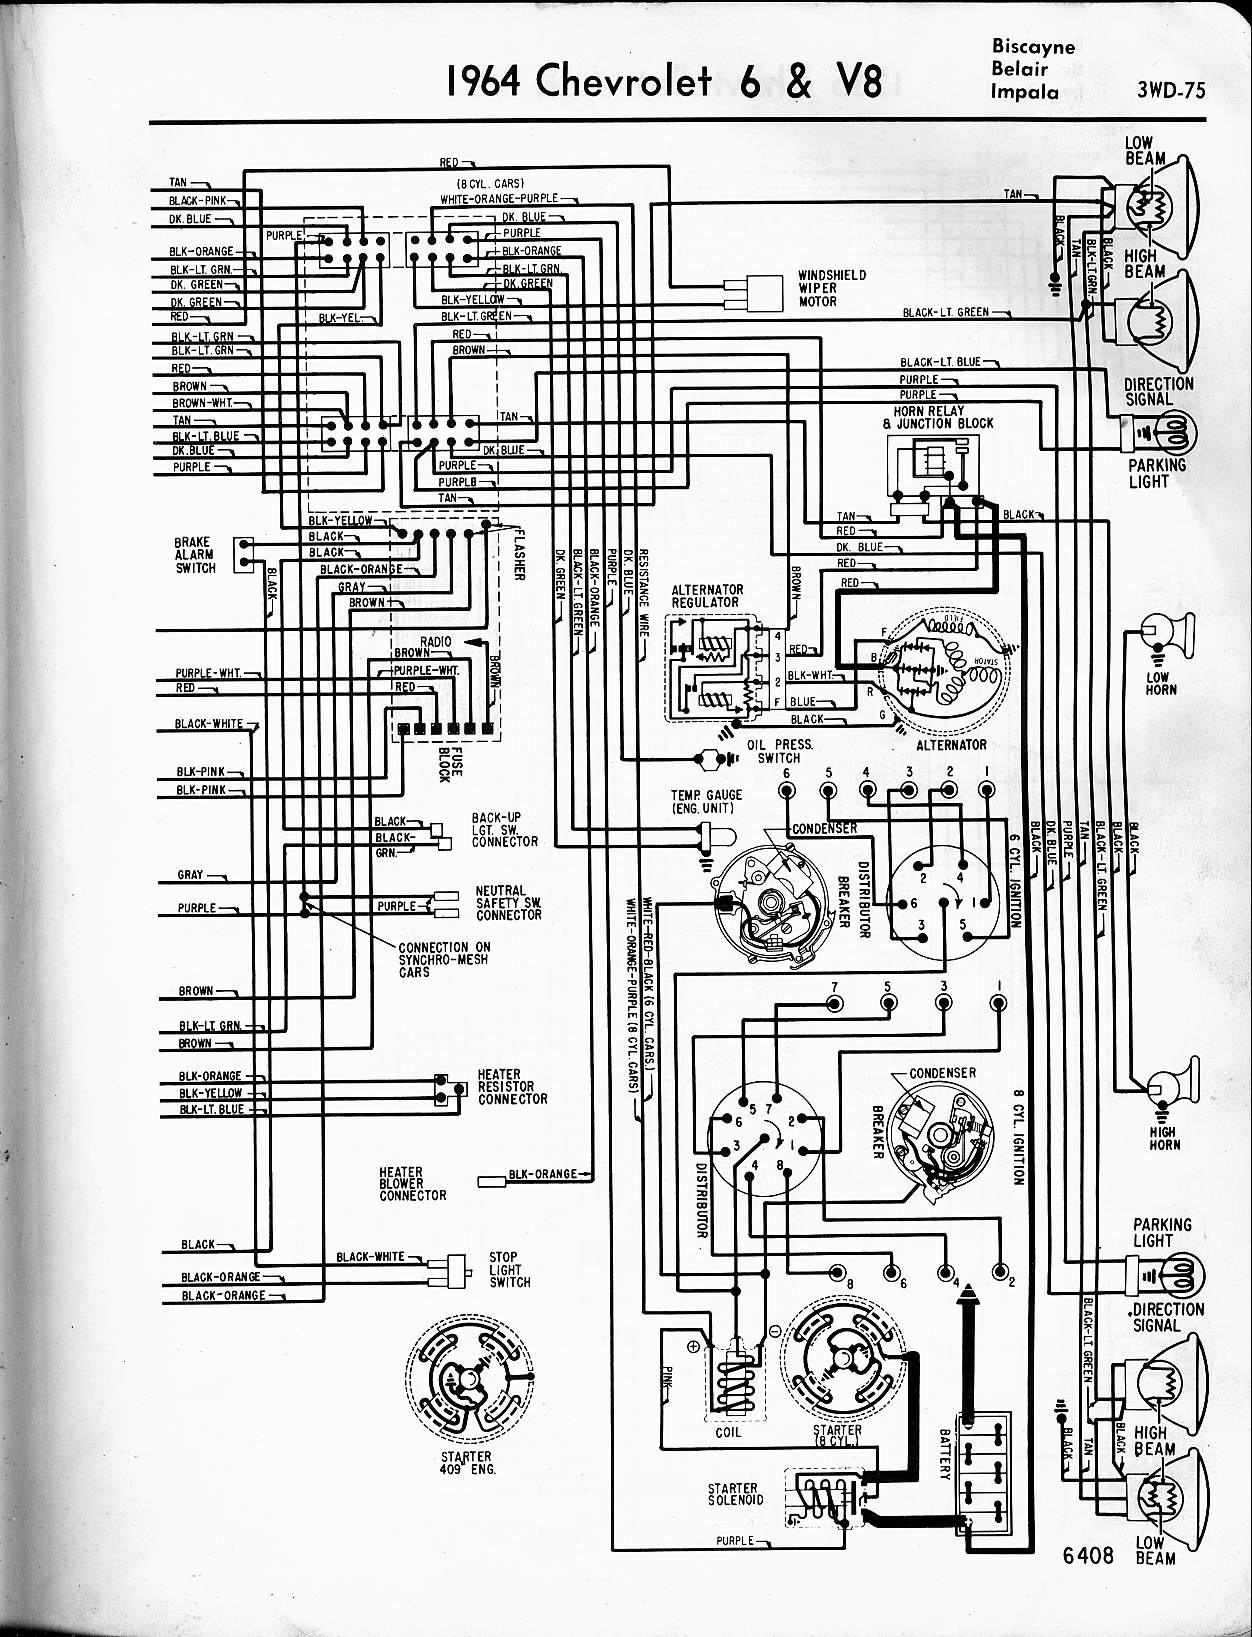 1964 Chevy Impala 283 Wiring Diagram - Wiring Diagram Replace mere-symbol -  mere-symbol.miramontiseo.it | Windshield Wiper Wiring Diagram For 2003 Chevy Impala |  | mere-symbol.miramontiseo.it